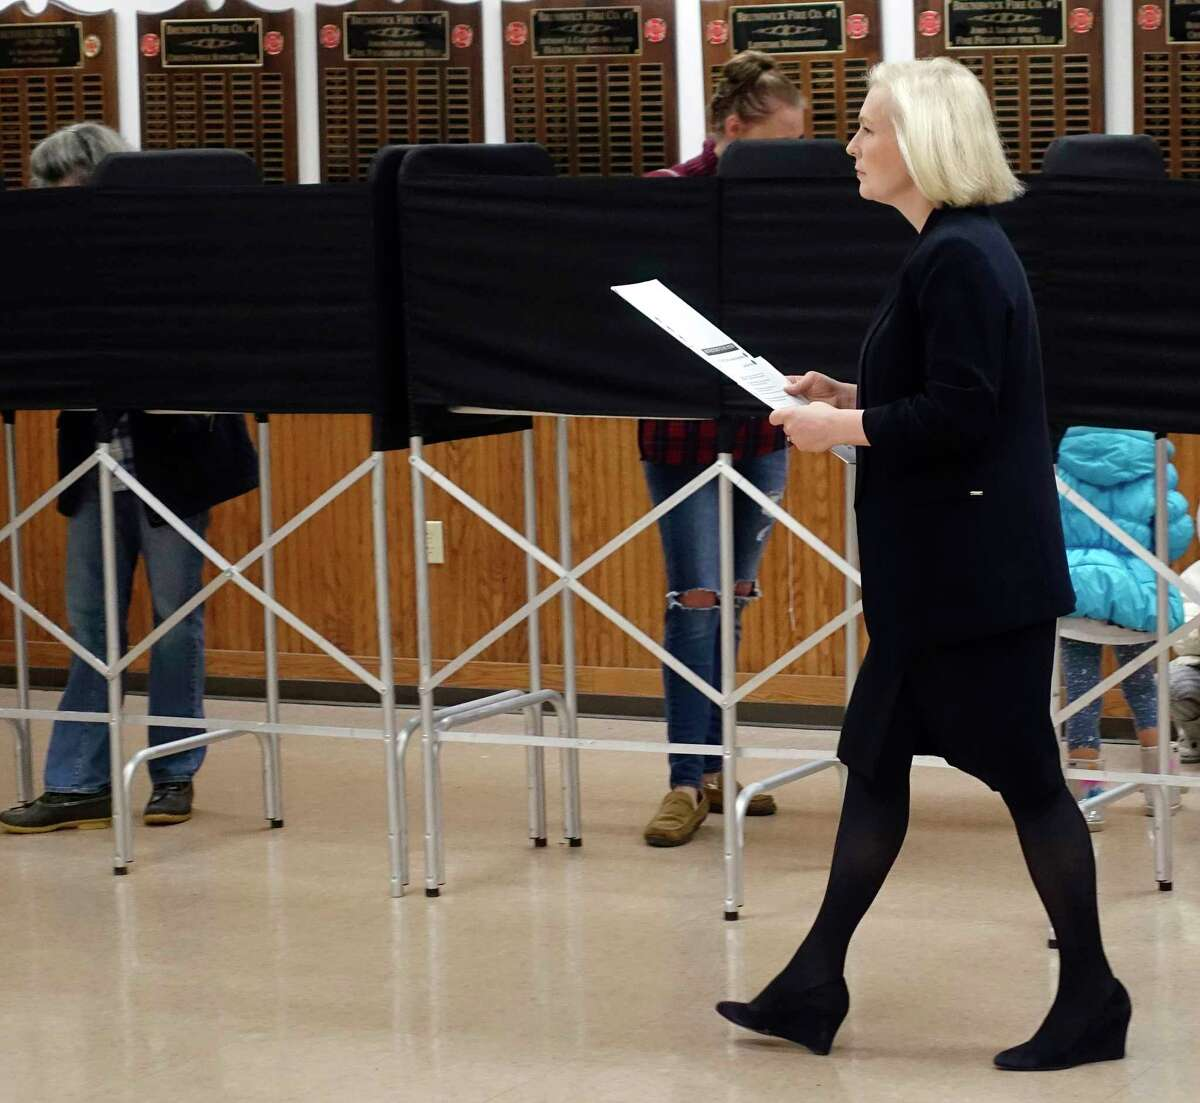 U.S. Senator Kirsten Gillibrand carries her ballot over to the voting machine to input the ballot at the Brunswick Fire Co. No 1 on Tuesday, Nov. 6, 2018, in Troy, N.Y. (Paul Buckowski/Times Union)